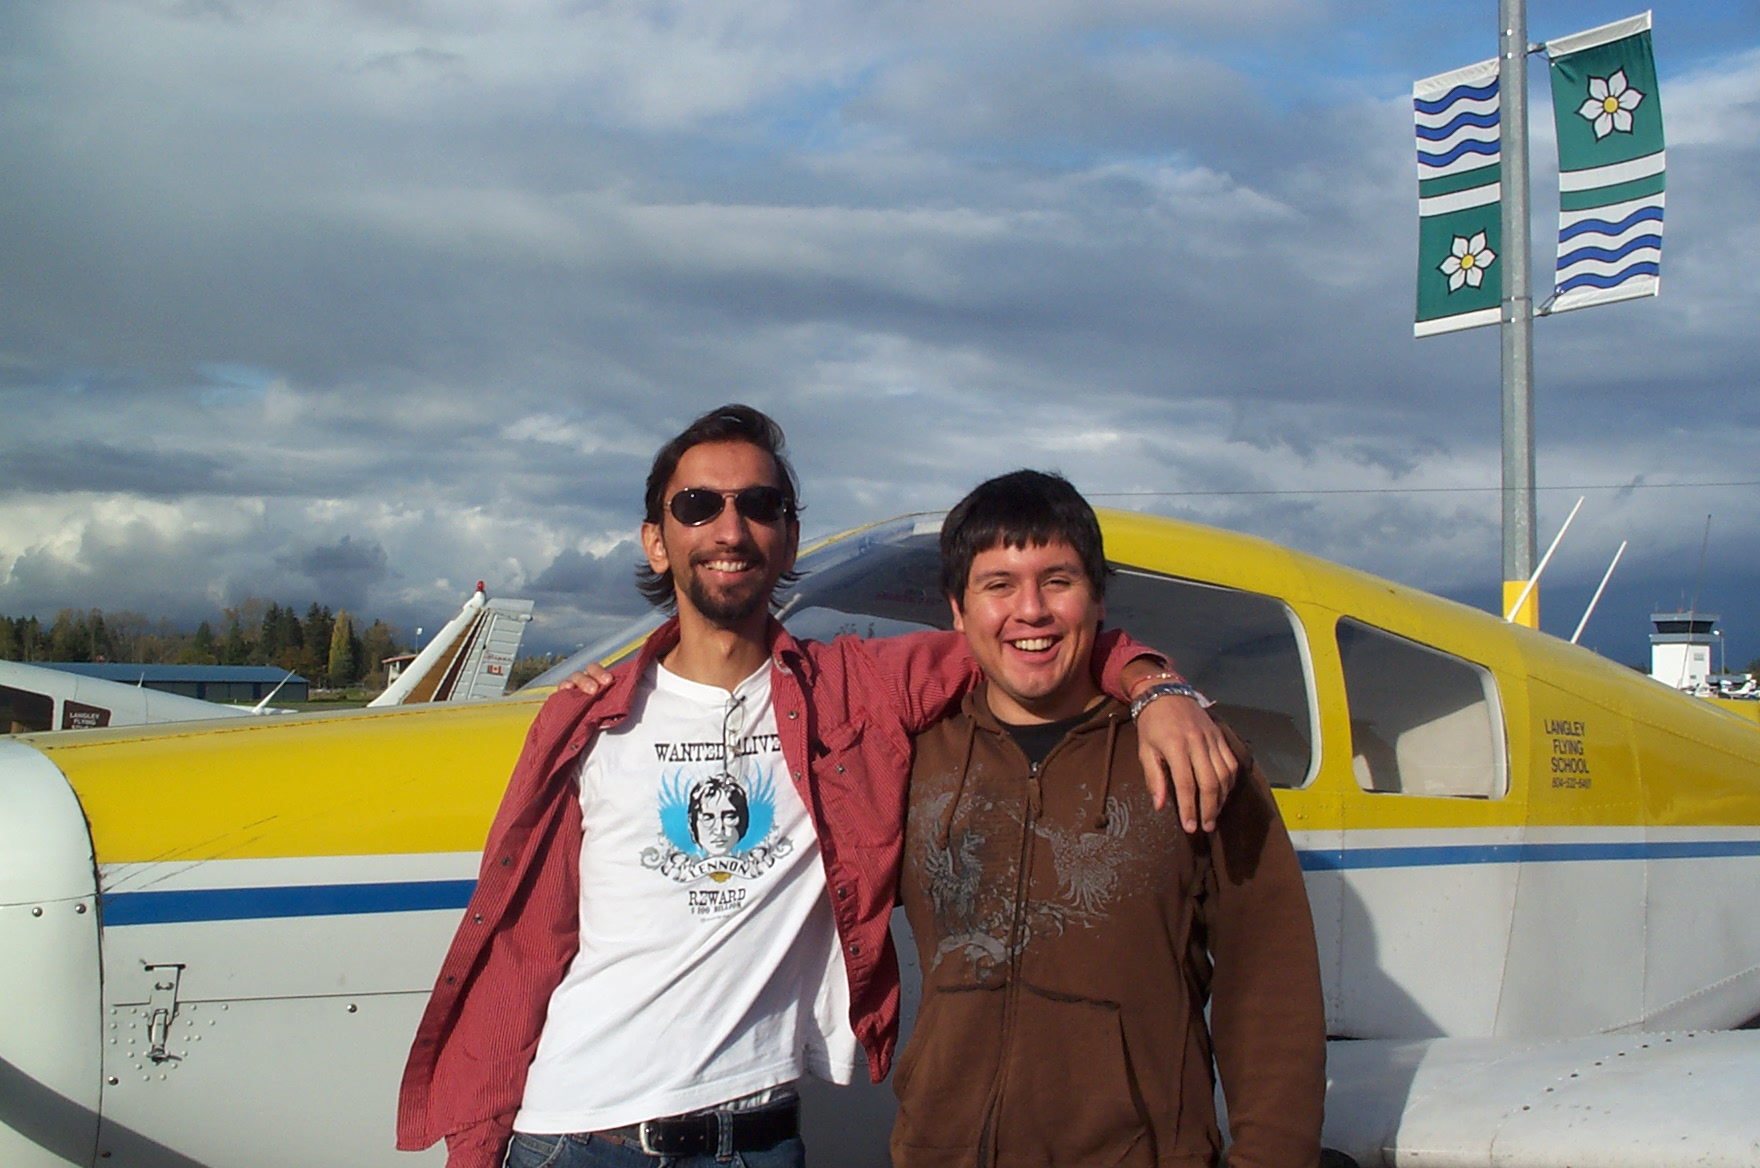 Carlos Calderon Futierrez with his Flight Instructor Mayank Mittal after the successfull completion of Carlos' Private PIlot Flight Test on October 24, 2010. Langley Flying School.